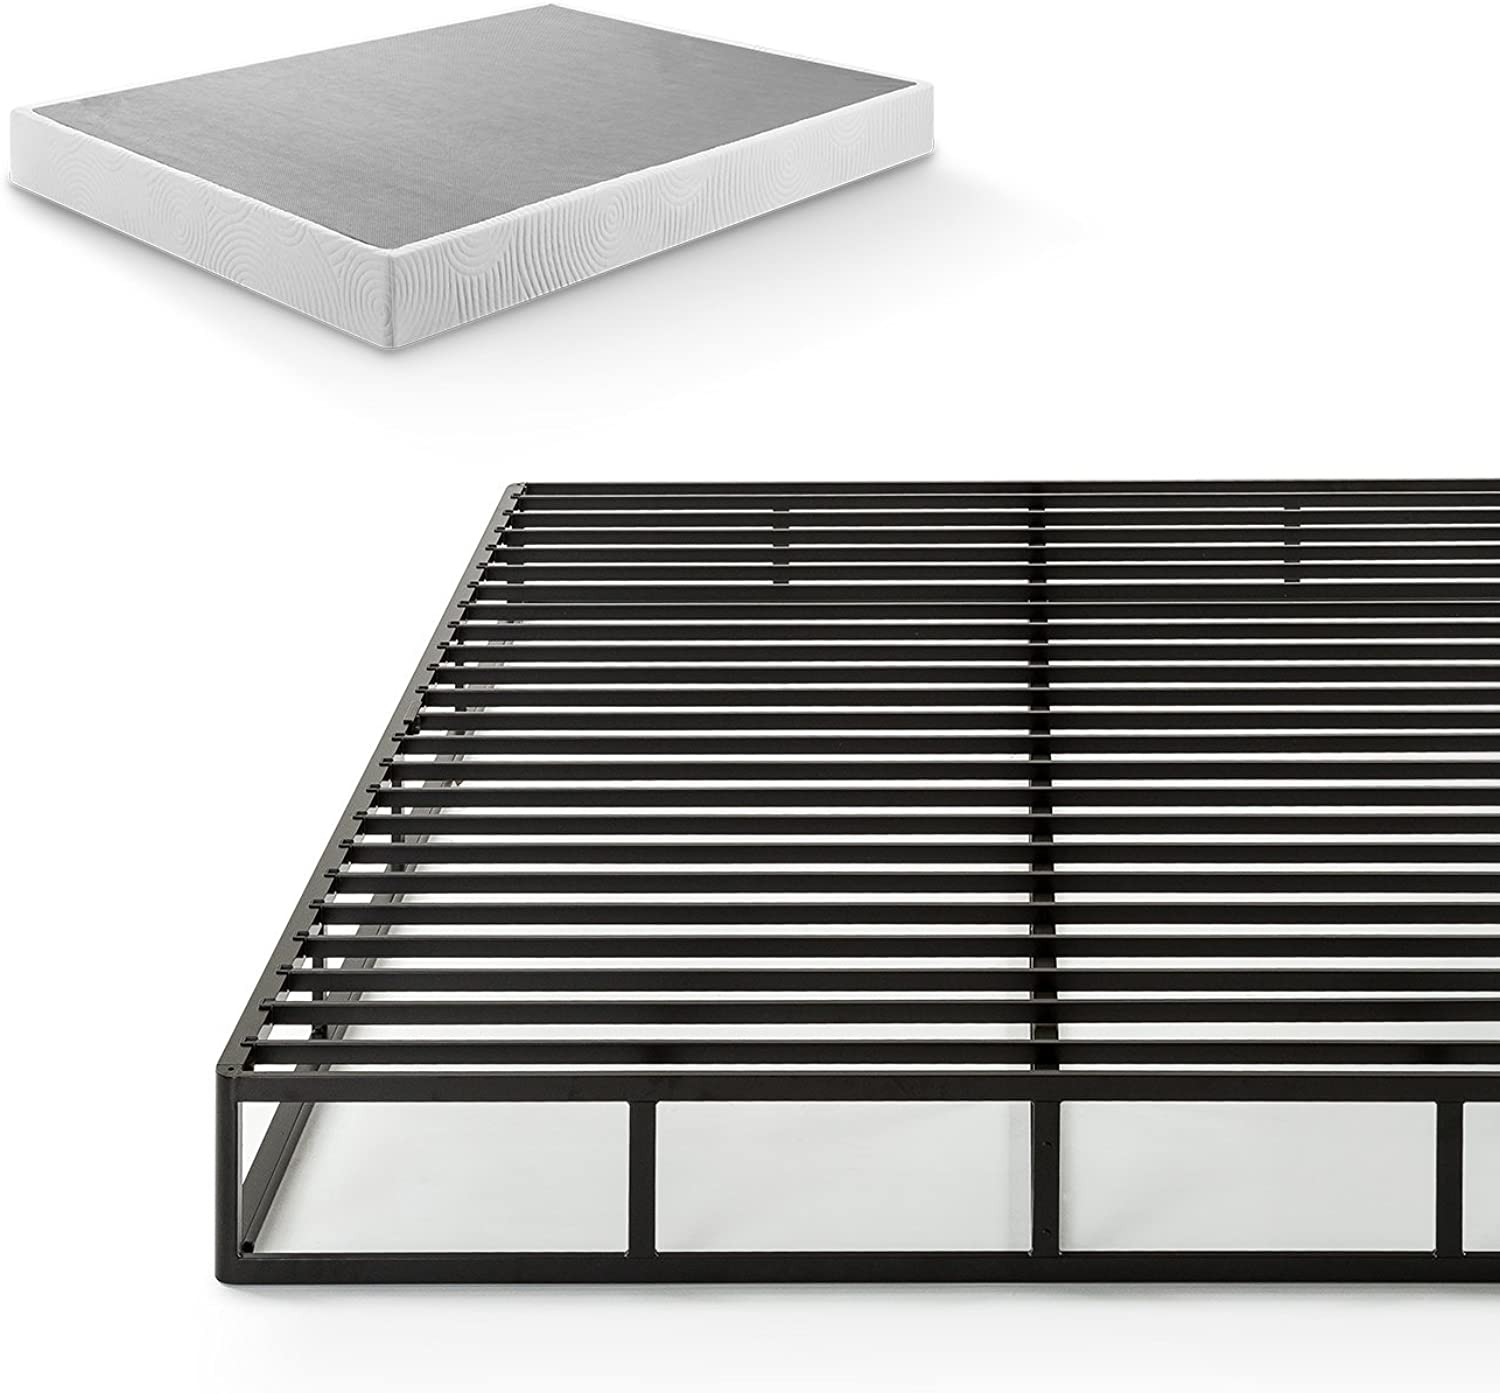 Zinus 7.5 Inch Quick Lock Smart Box Spring   Mattress Foundation   Strong Steel Structure   Easy Assembly, Twin